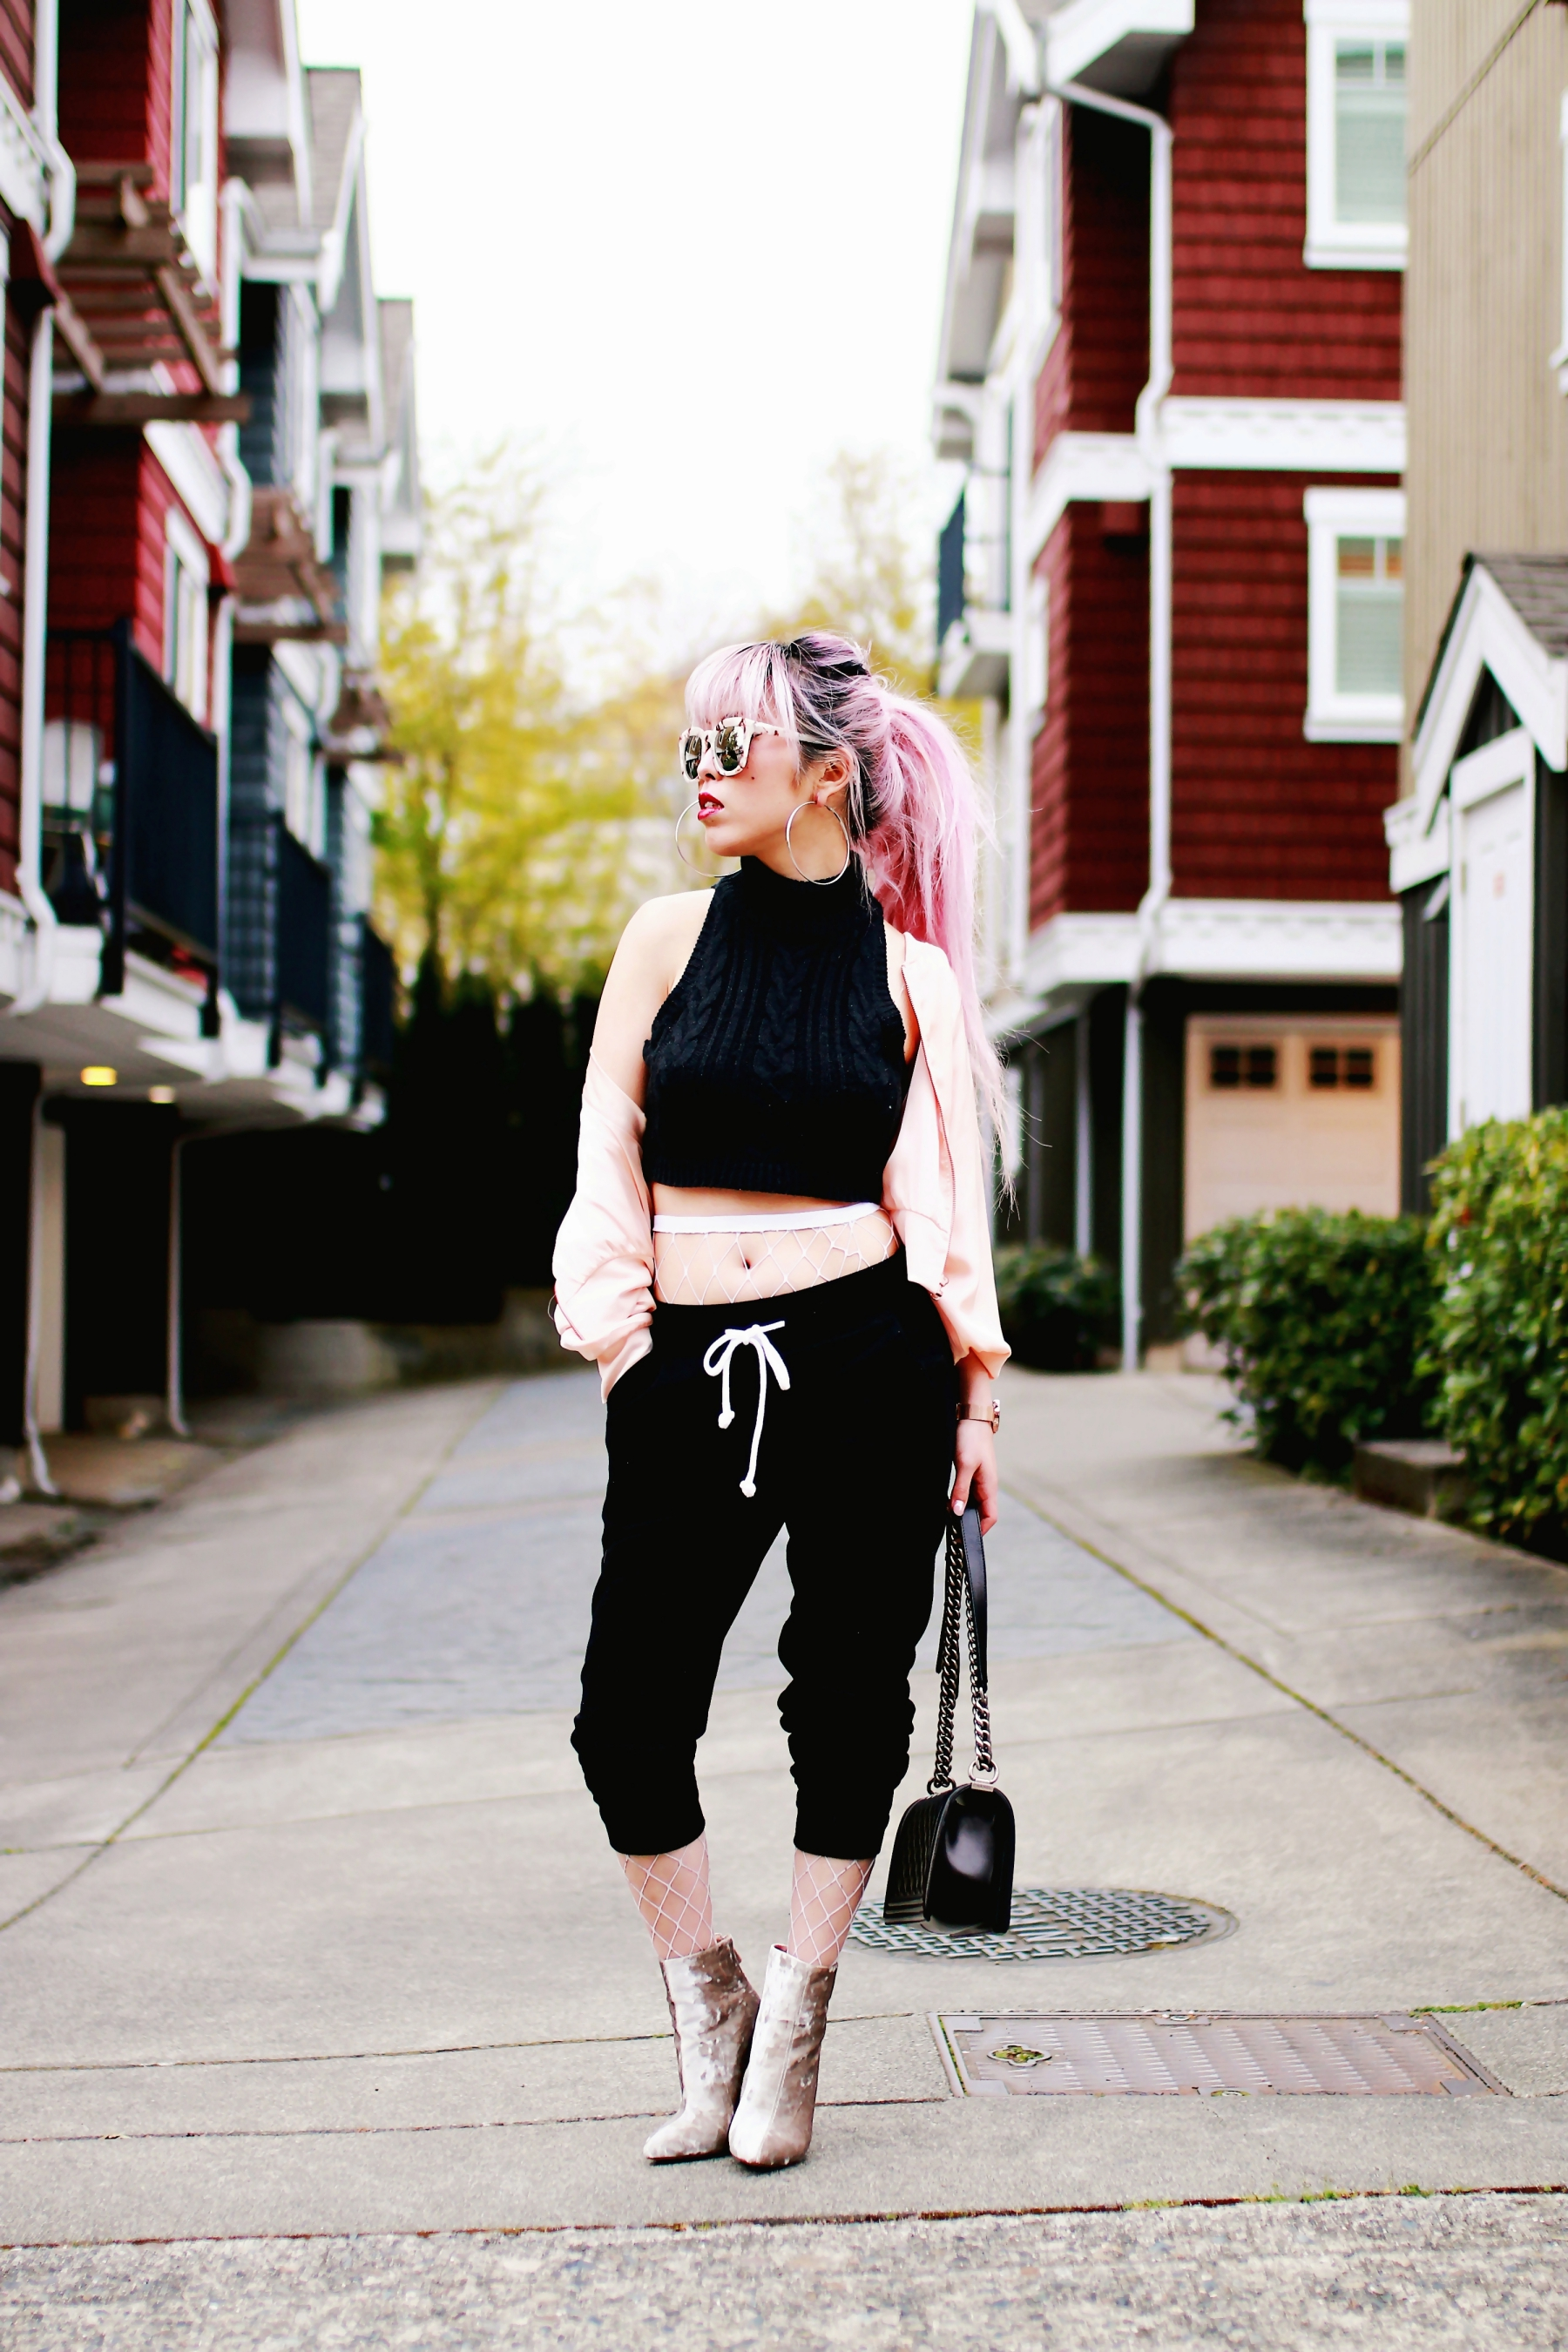 Zara Blush Silk Bomber Jacket_Missguided mock neck Crop top_ASOS fishnet tights_H&M sweatpants_Public Desire Boots_Chanel Bag_L'Oreal Red Lipstick_Free People Mirrored Sunglasses_Aikas Love Closet_Seattle Fashion Style Blogger_Pink Hair